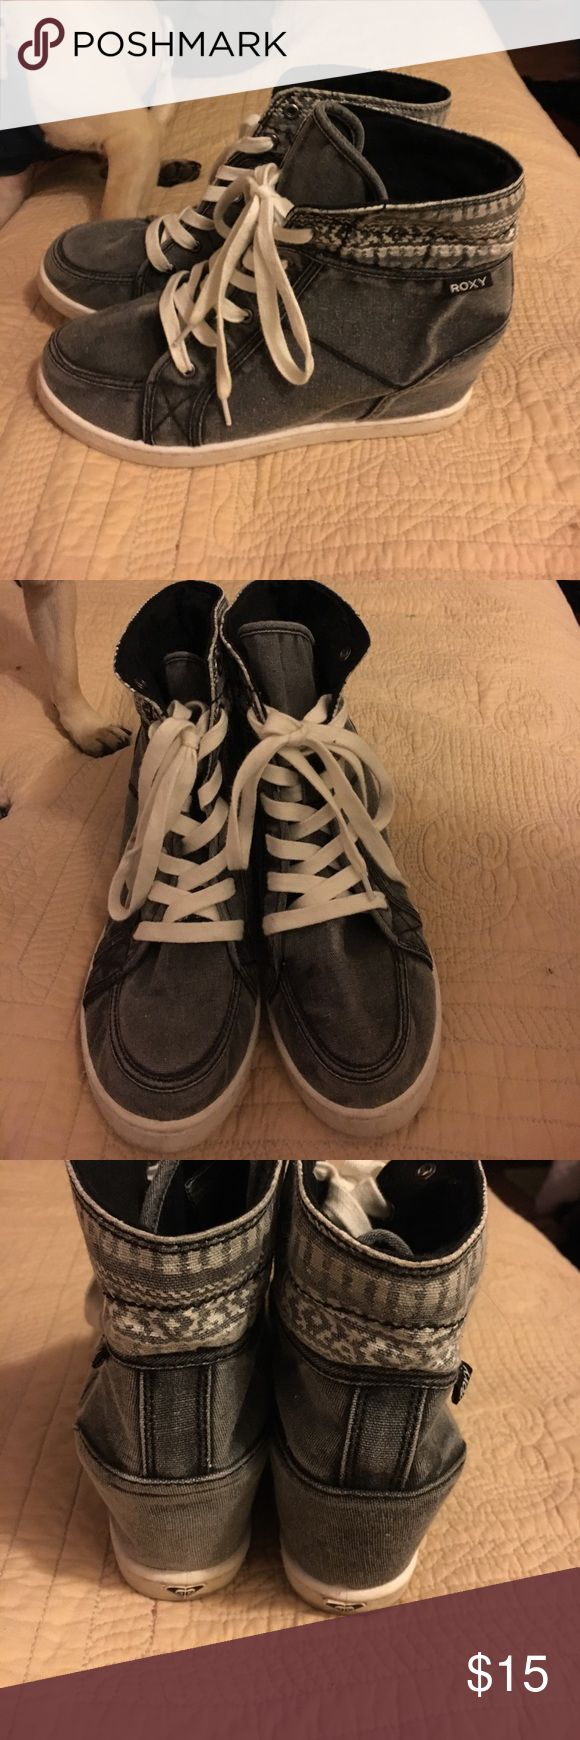 Size 10 Roxy heeled  wedge tennis shoes used Roxy gray tennis shoes wedges good used condition. Size 10 Roxy Shoes Athletic Shoes